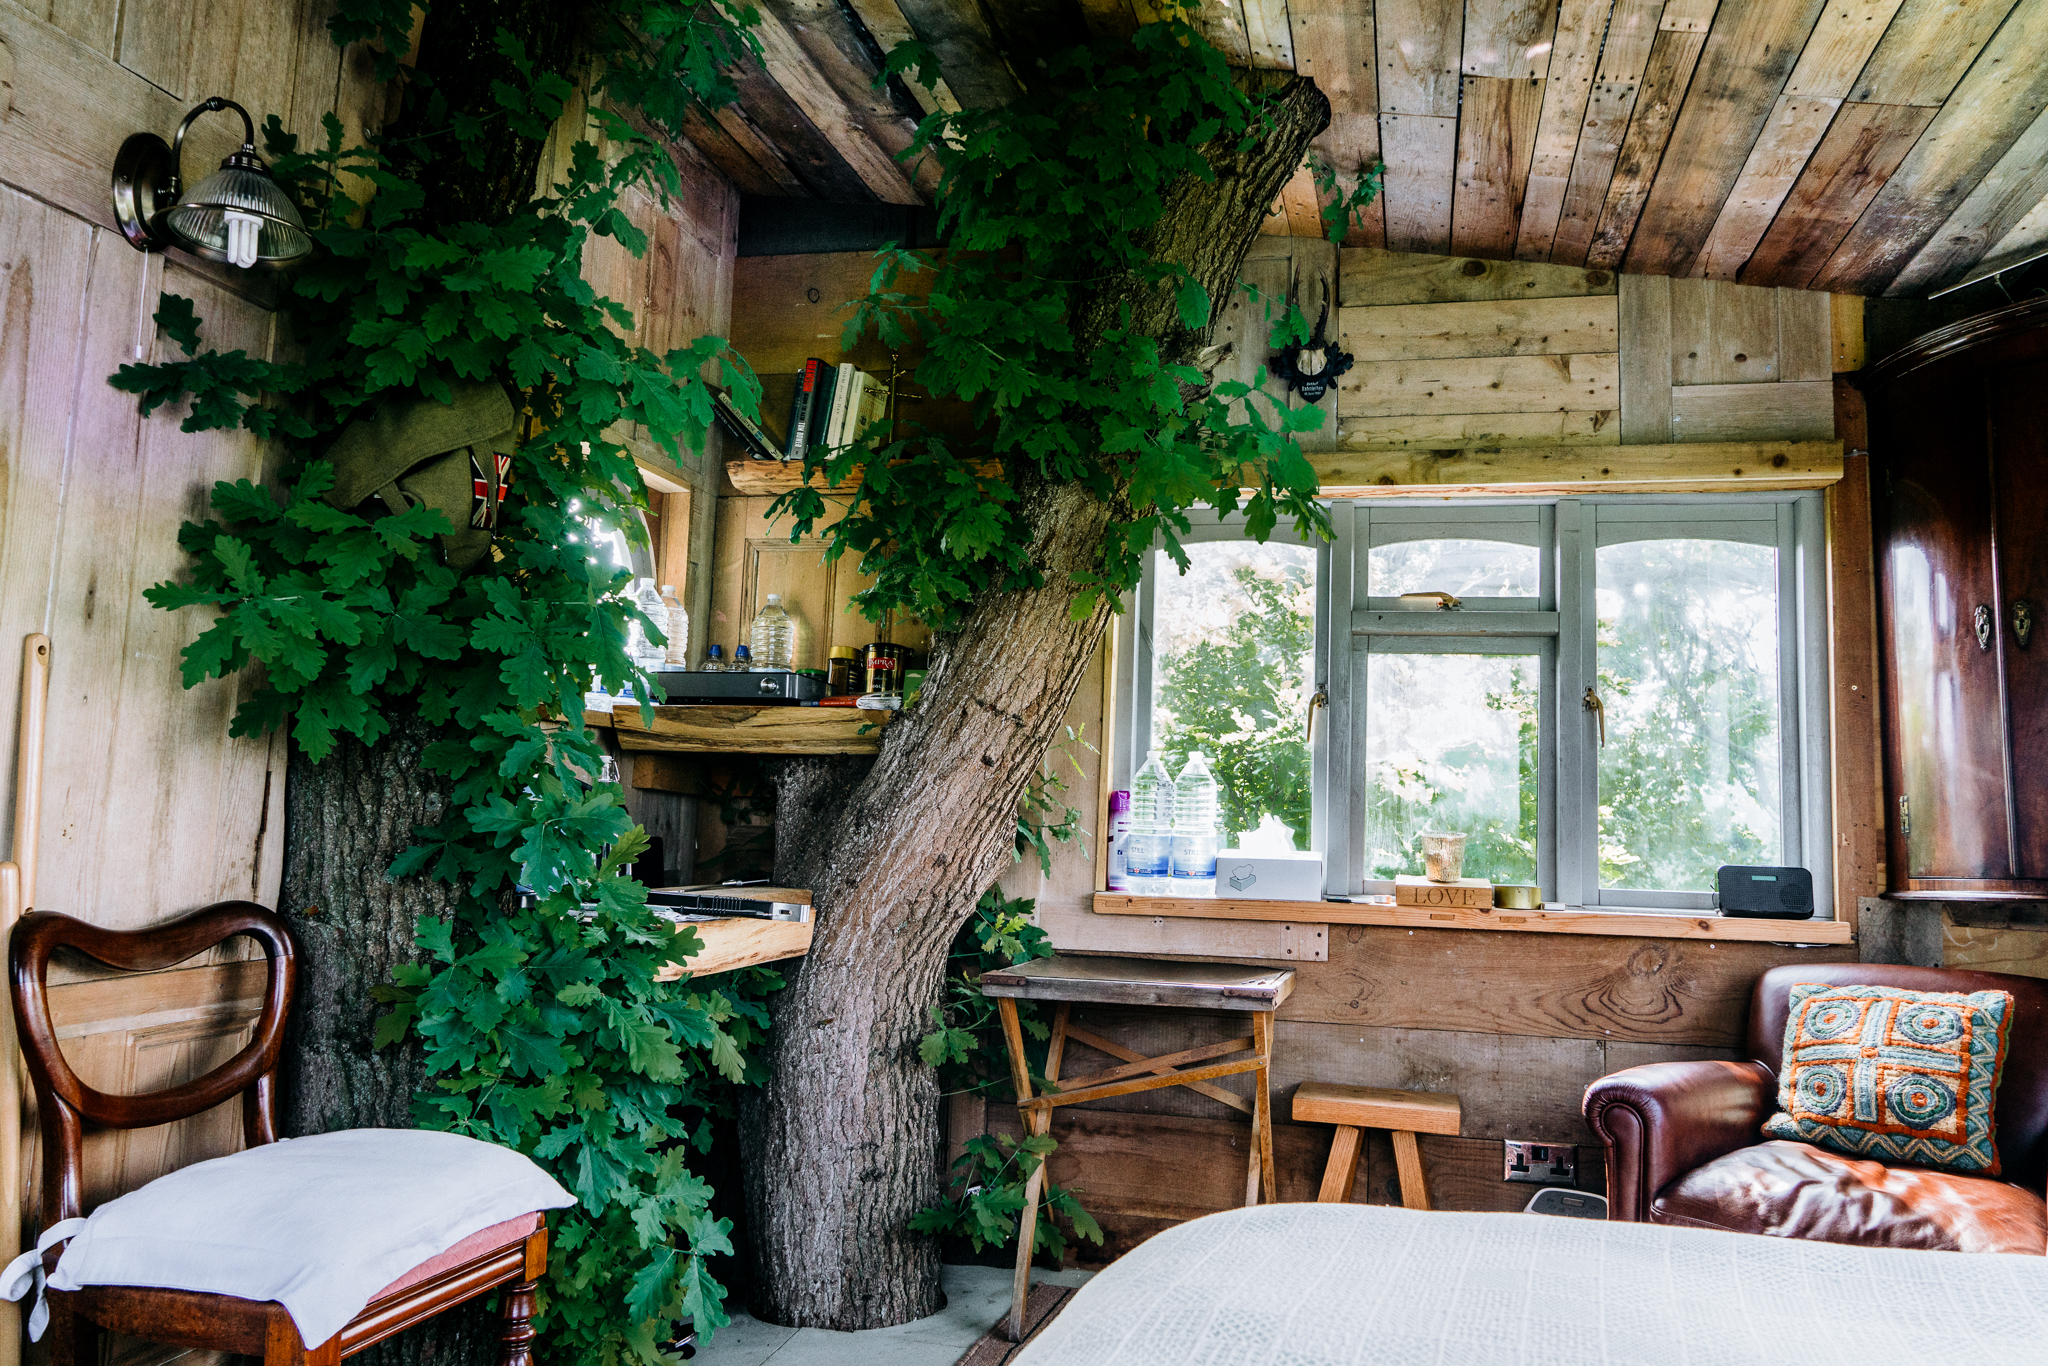 The Treehouse -